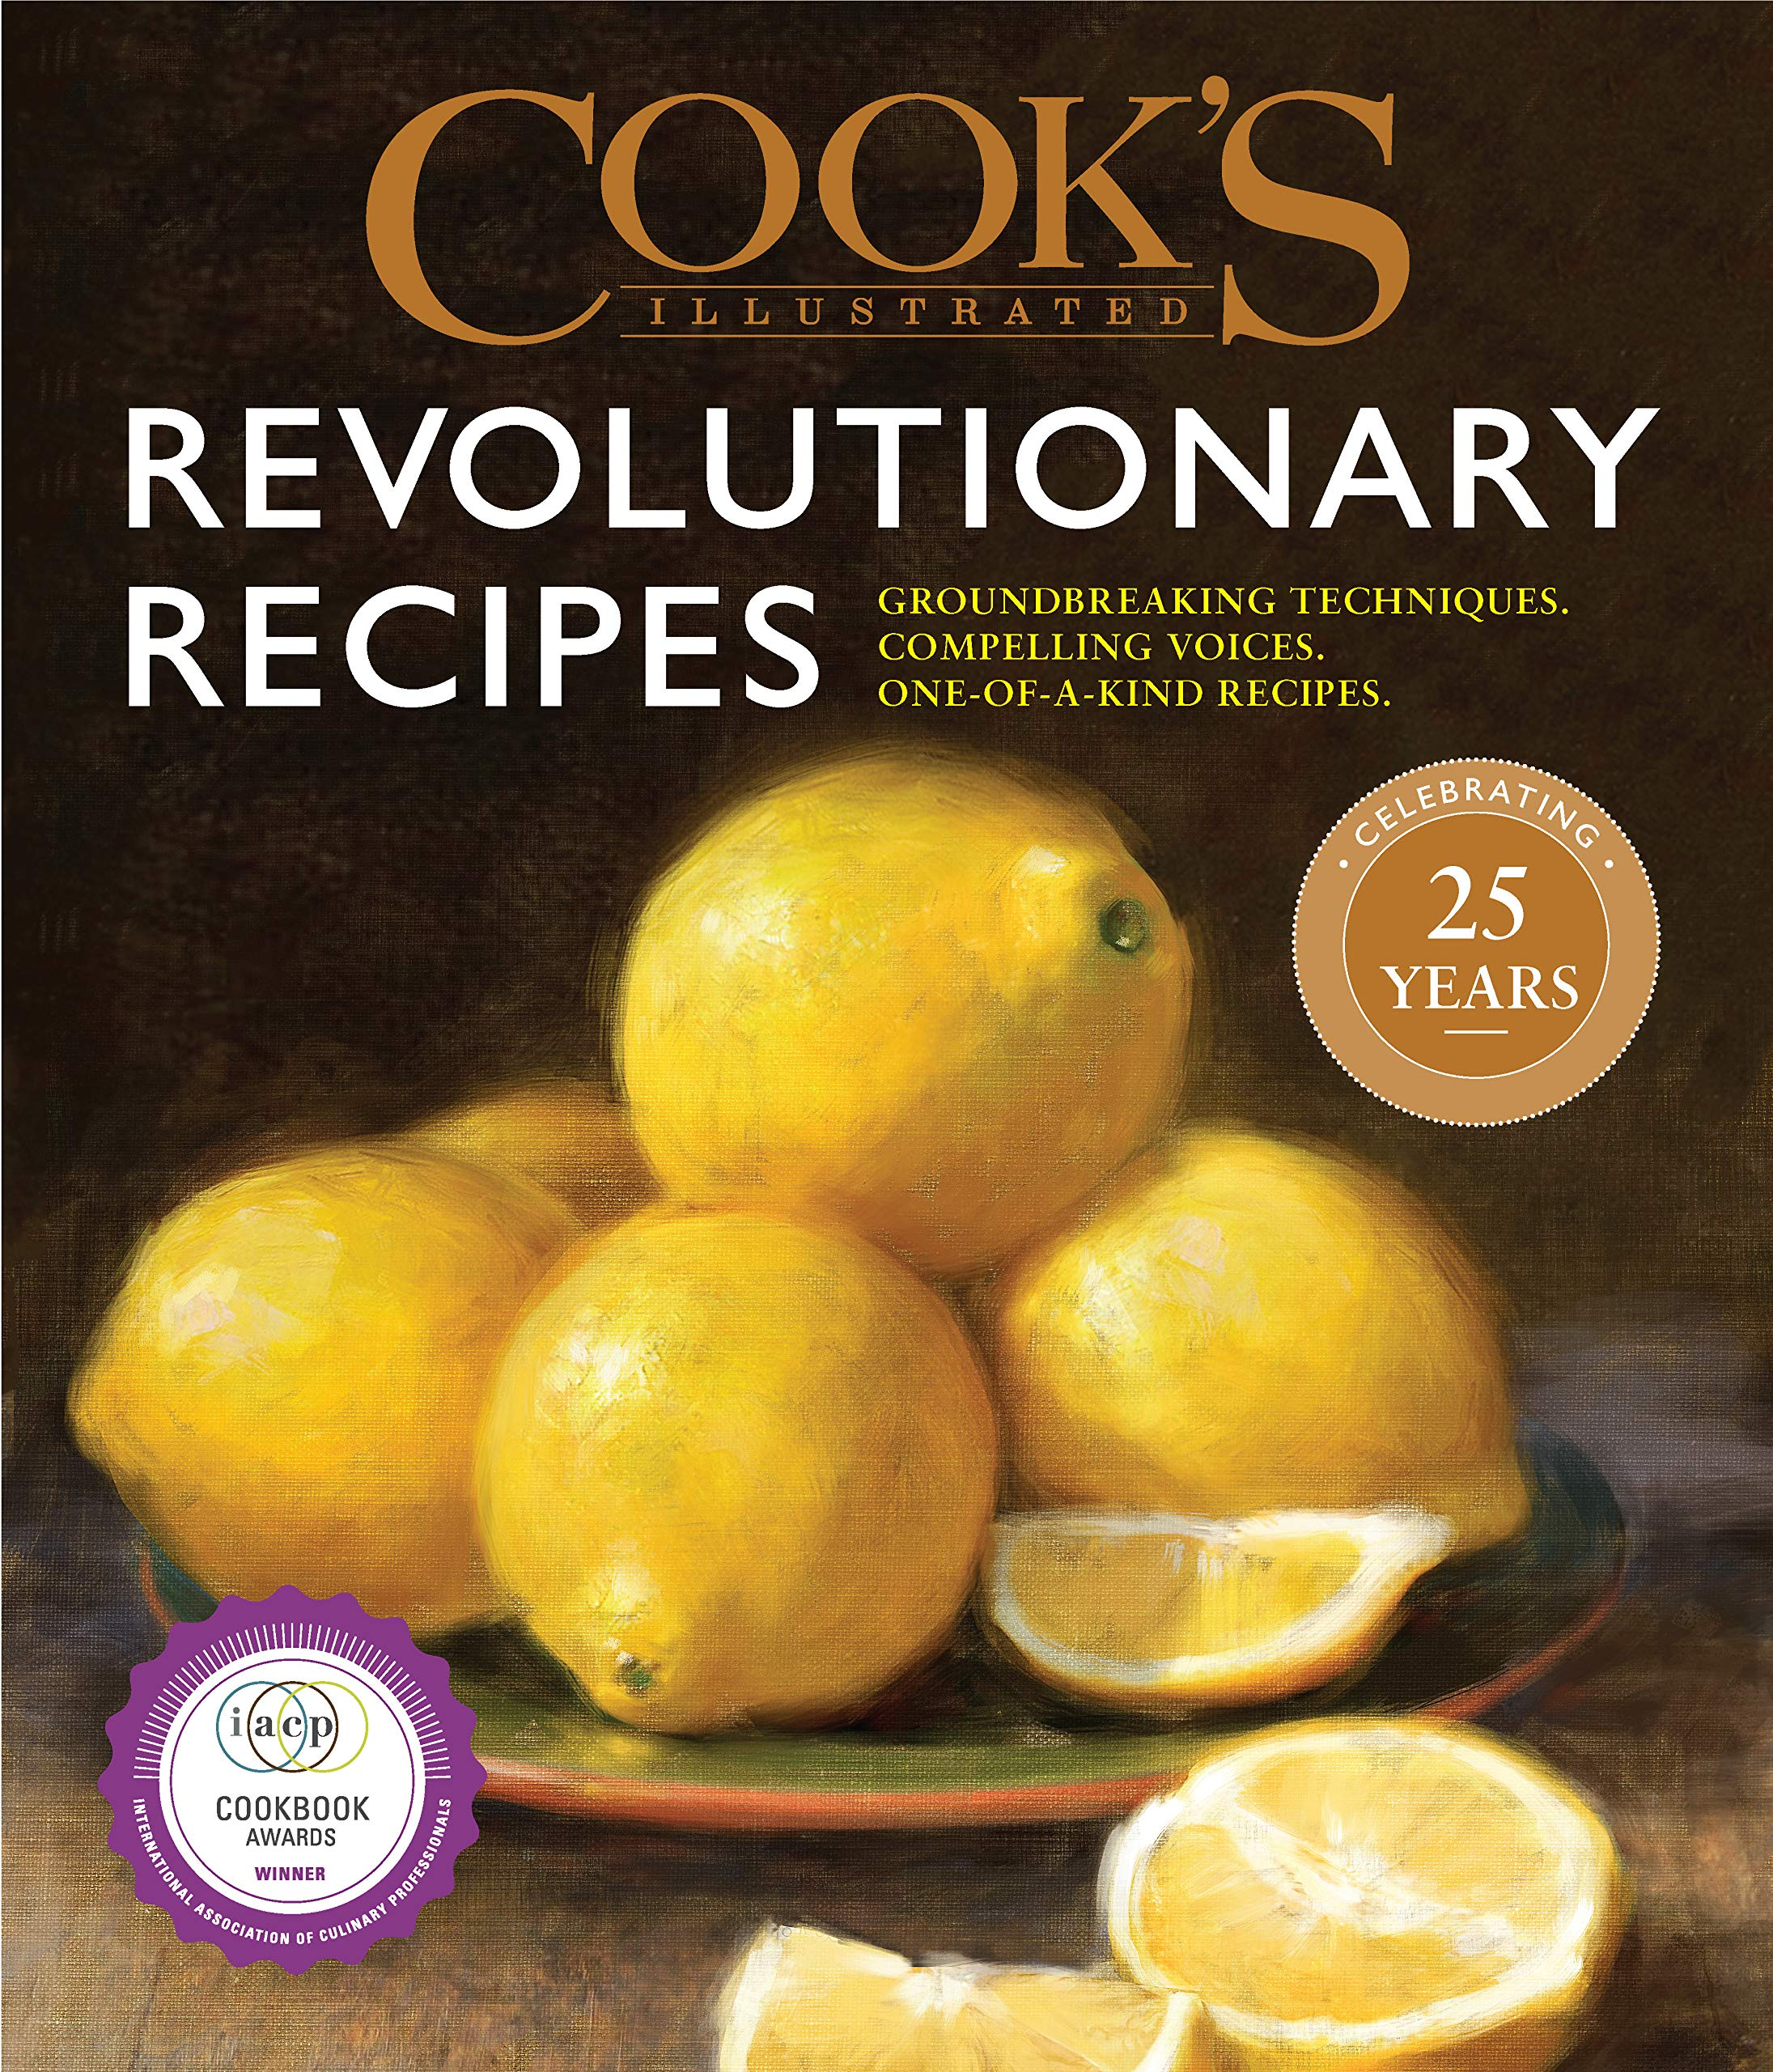 Cook's Illustrated Revolutionary Recipes: Groundbreaking techniques. Compelling voices. One-of-a-kind recipes. by Cook's Illustrated